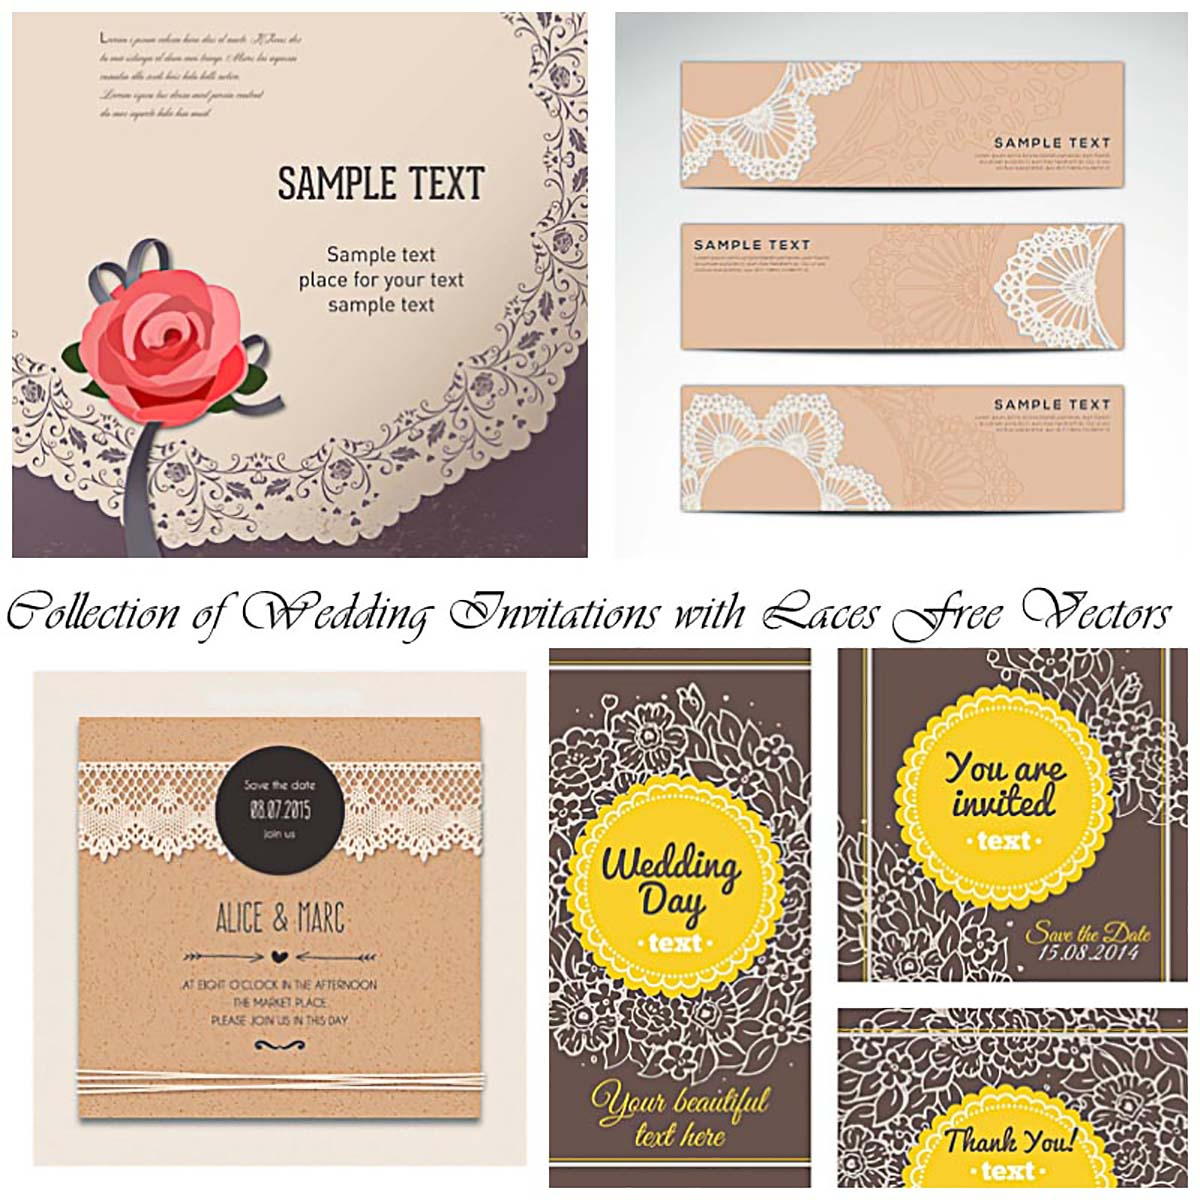 Wedding invitation vector illustration vector free download - Cute Wedding Invitations With Laces Vector Free Download Wedding Invitations